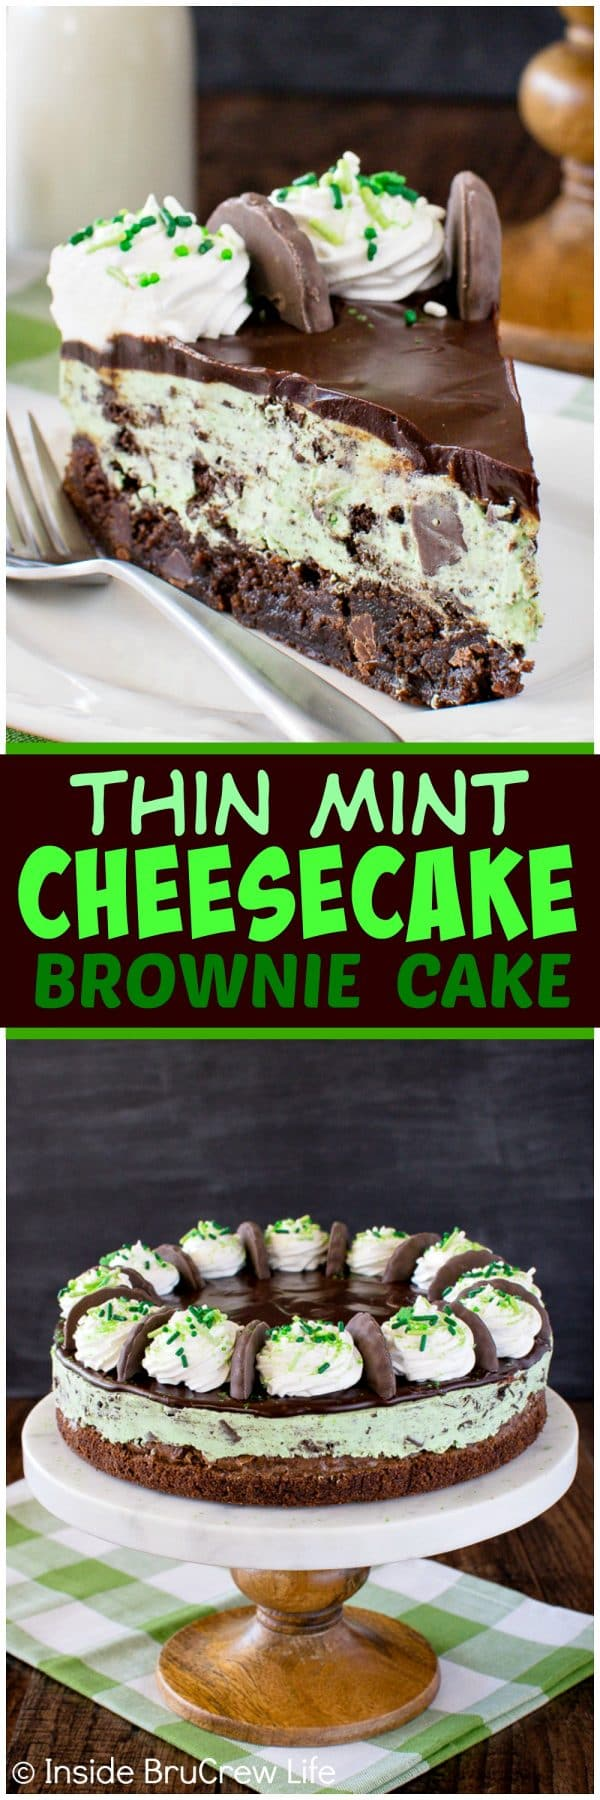 Cookie Nachtisch Thin Mint Cheesecake Brownie Cake Inside Brucrew Life